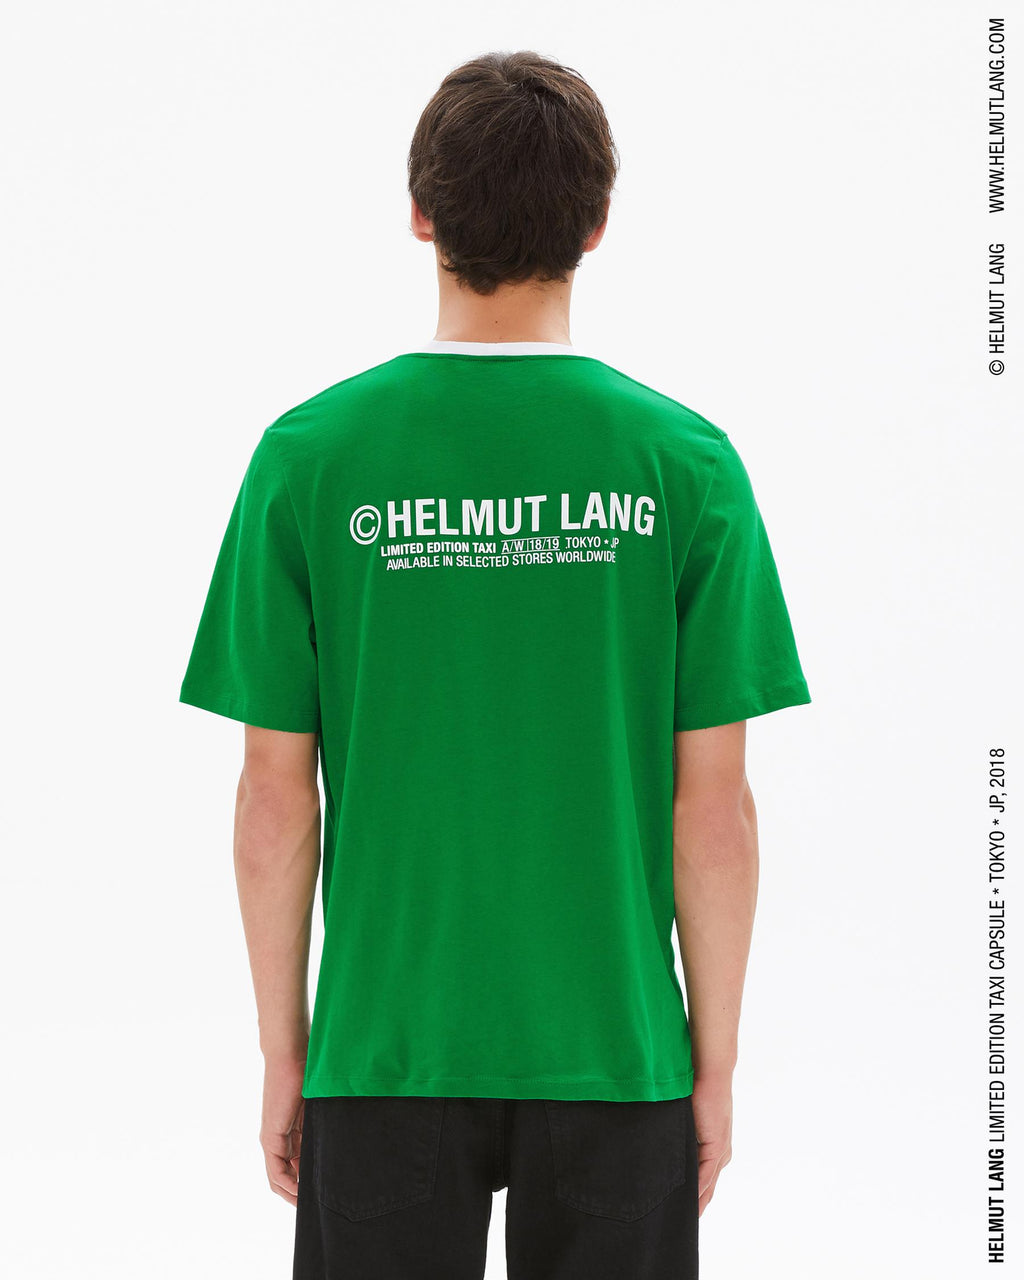 Green and White Taxi T-Shirt (Tokyo)